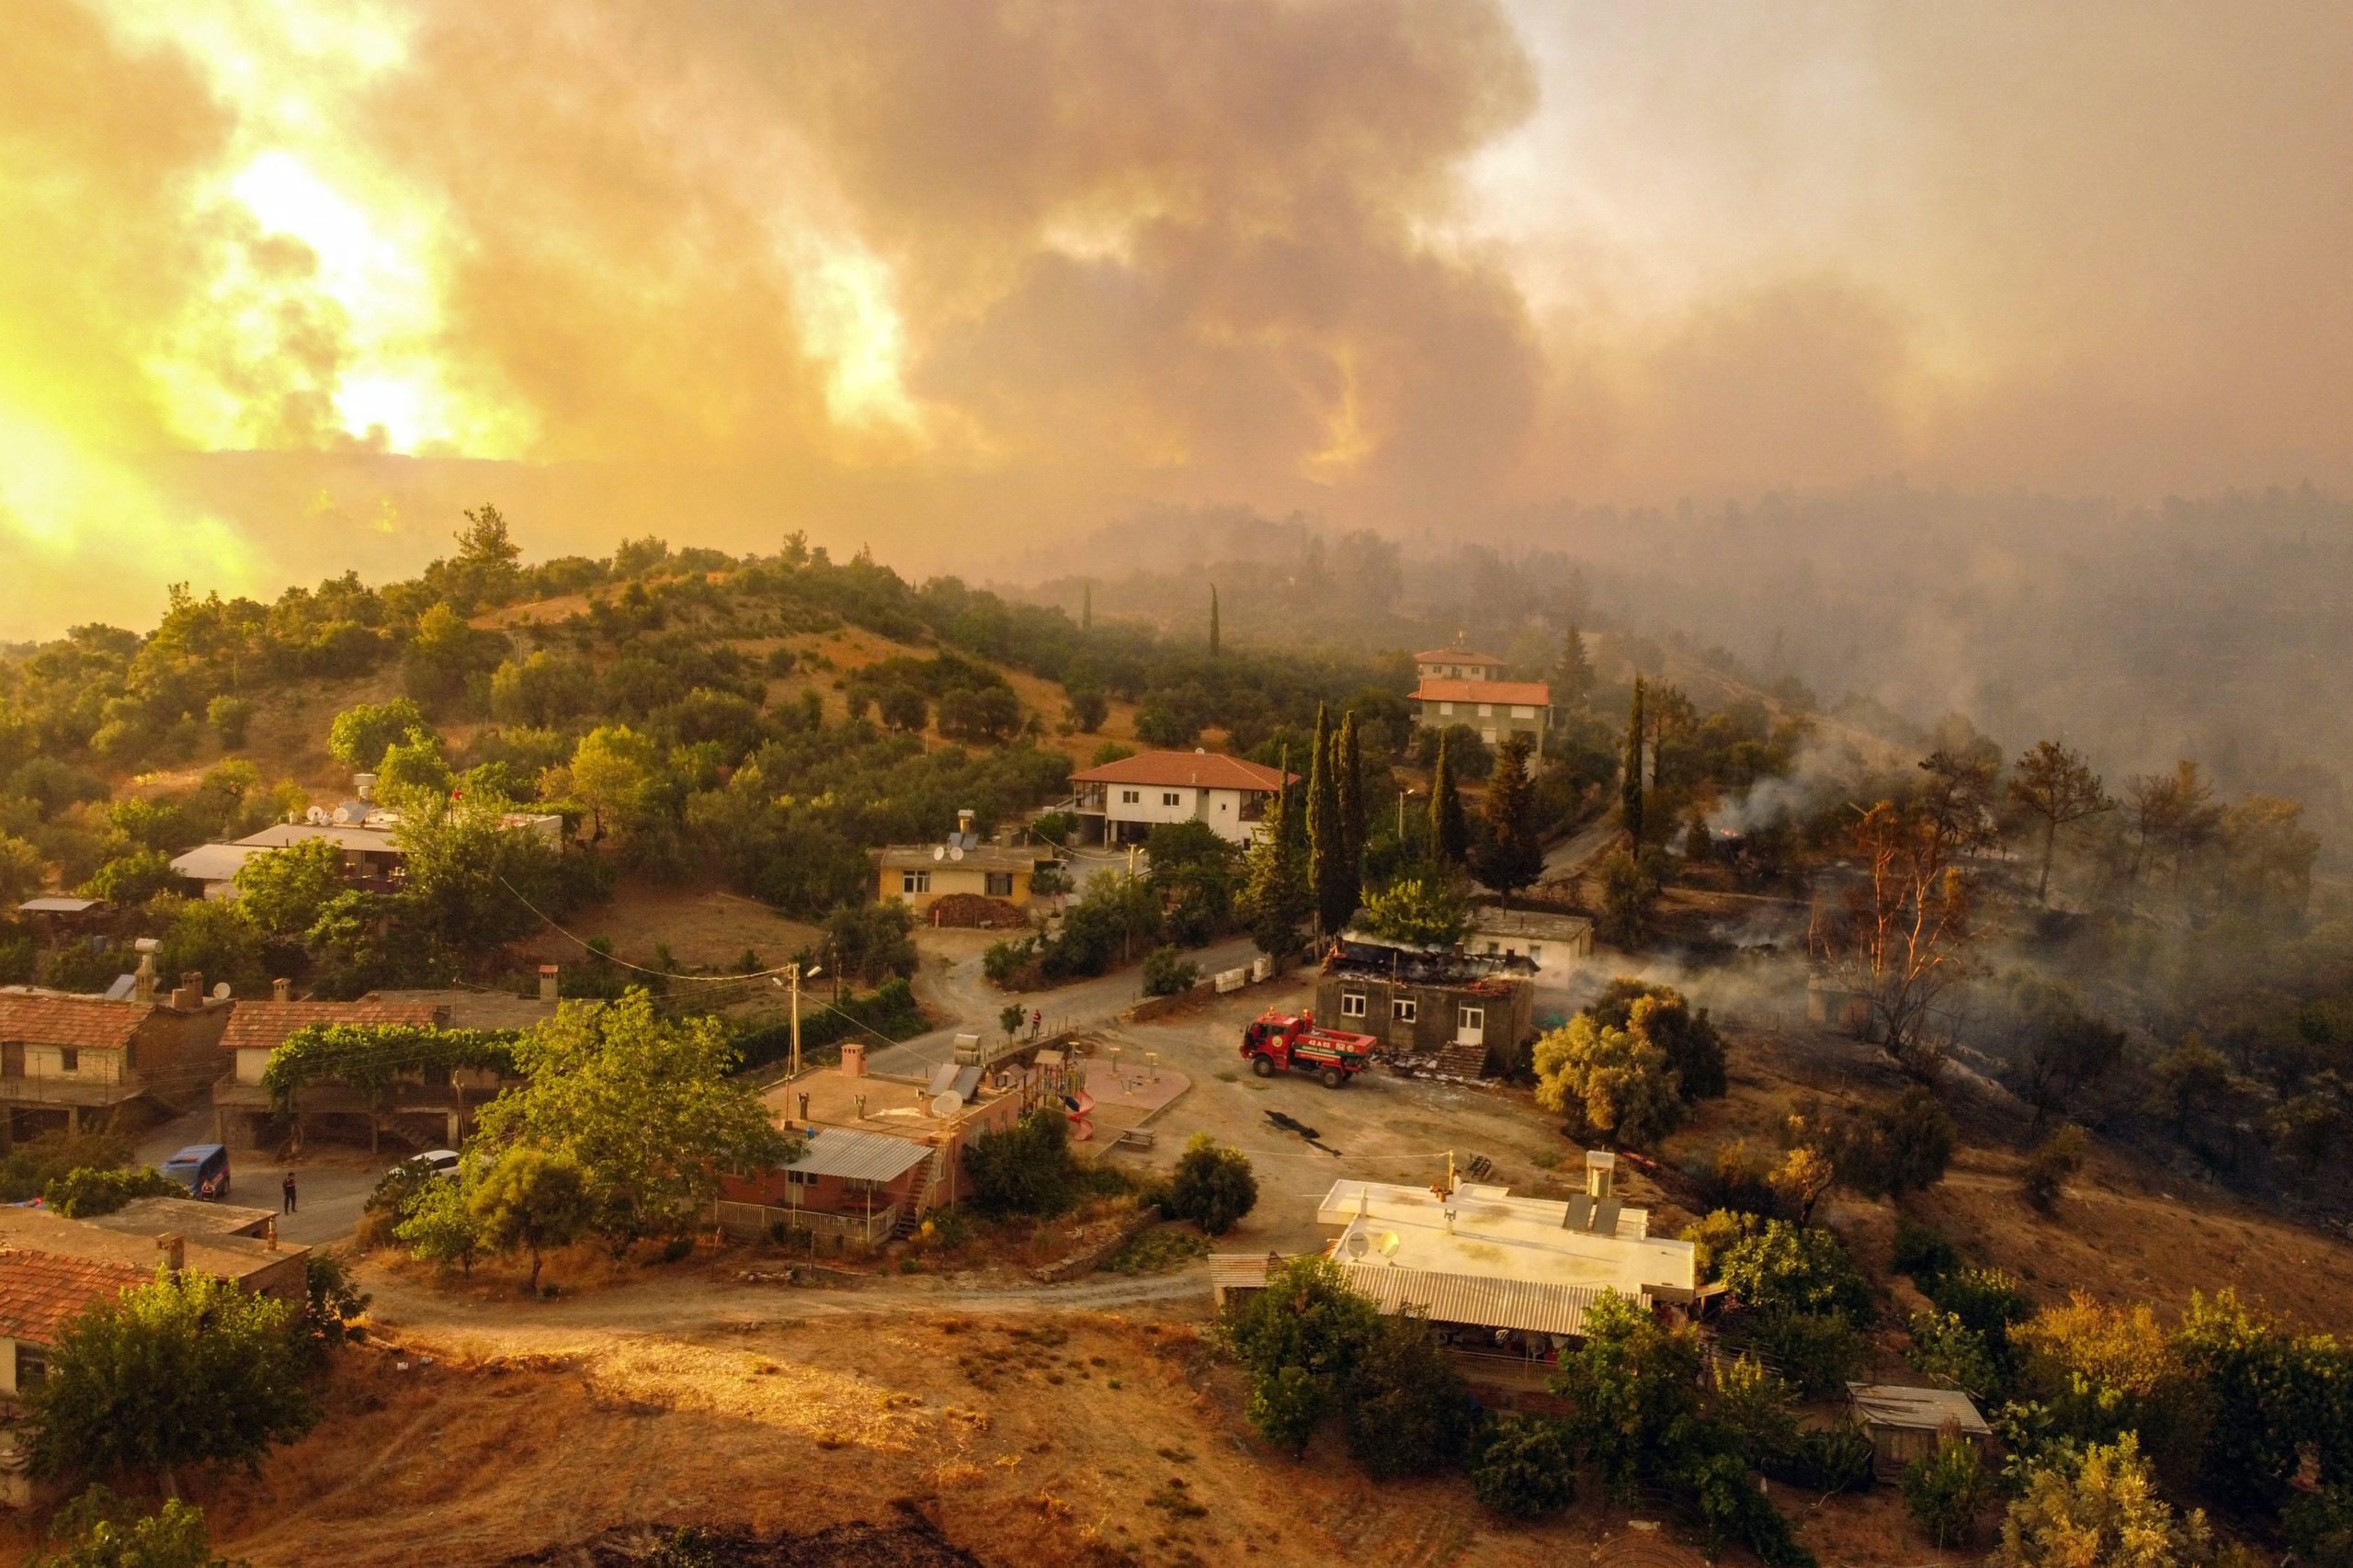 This aerial photograph shows houses surrounded by a wildfire which engulfed a Mediterranean resort region on Turkey's southern coast near the town of Manavgat, on July 30, 2021. - At least three people were reported dead on July 29, 2021 and more than 100 injured as firefighters battled blazes engulfing a Mediterranean resort region on Turkey's southern coast. Officials also launched an investigation into suspicions that the fires that broke out Wednesday in four locations to the east of the tourist hotspot Antalya were the result of arson. (Photo by -/AFP via Getty Images)